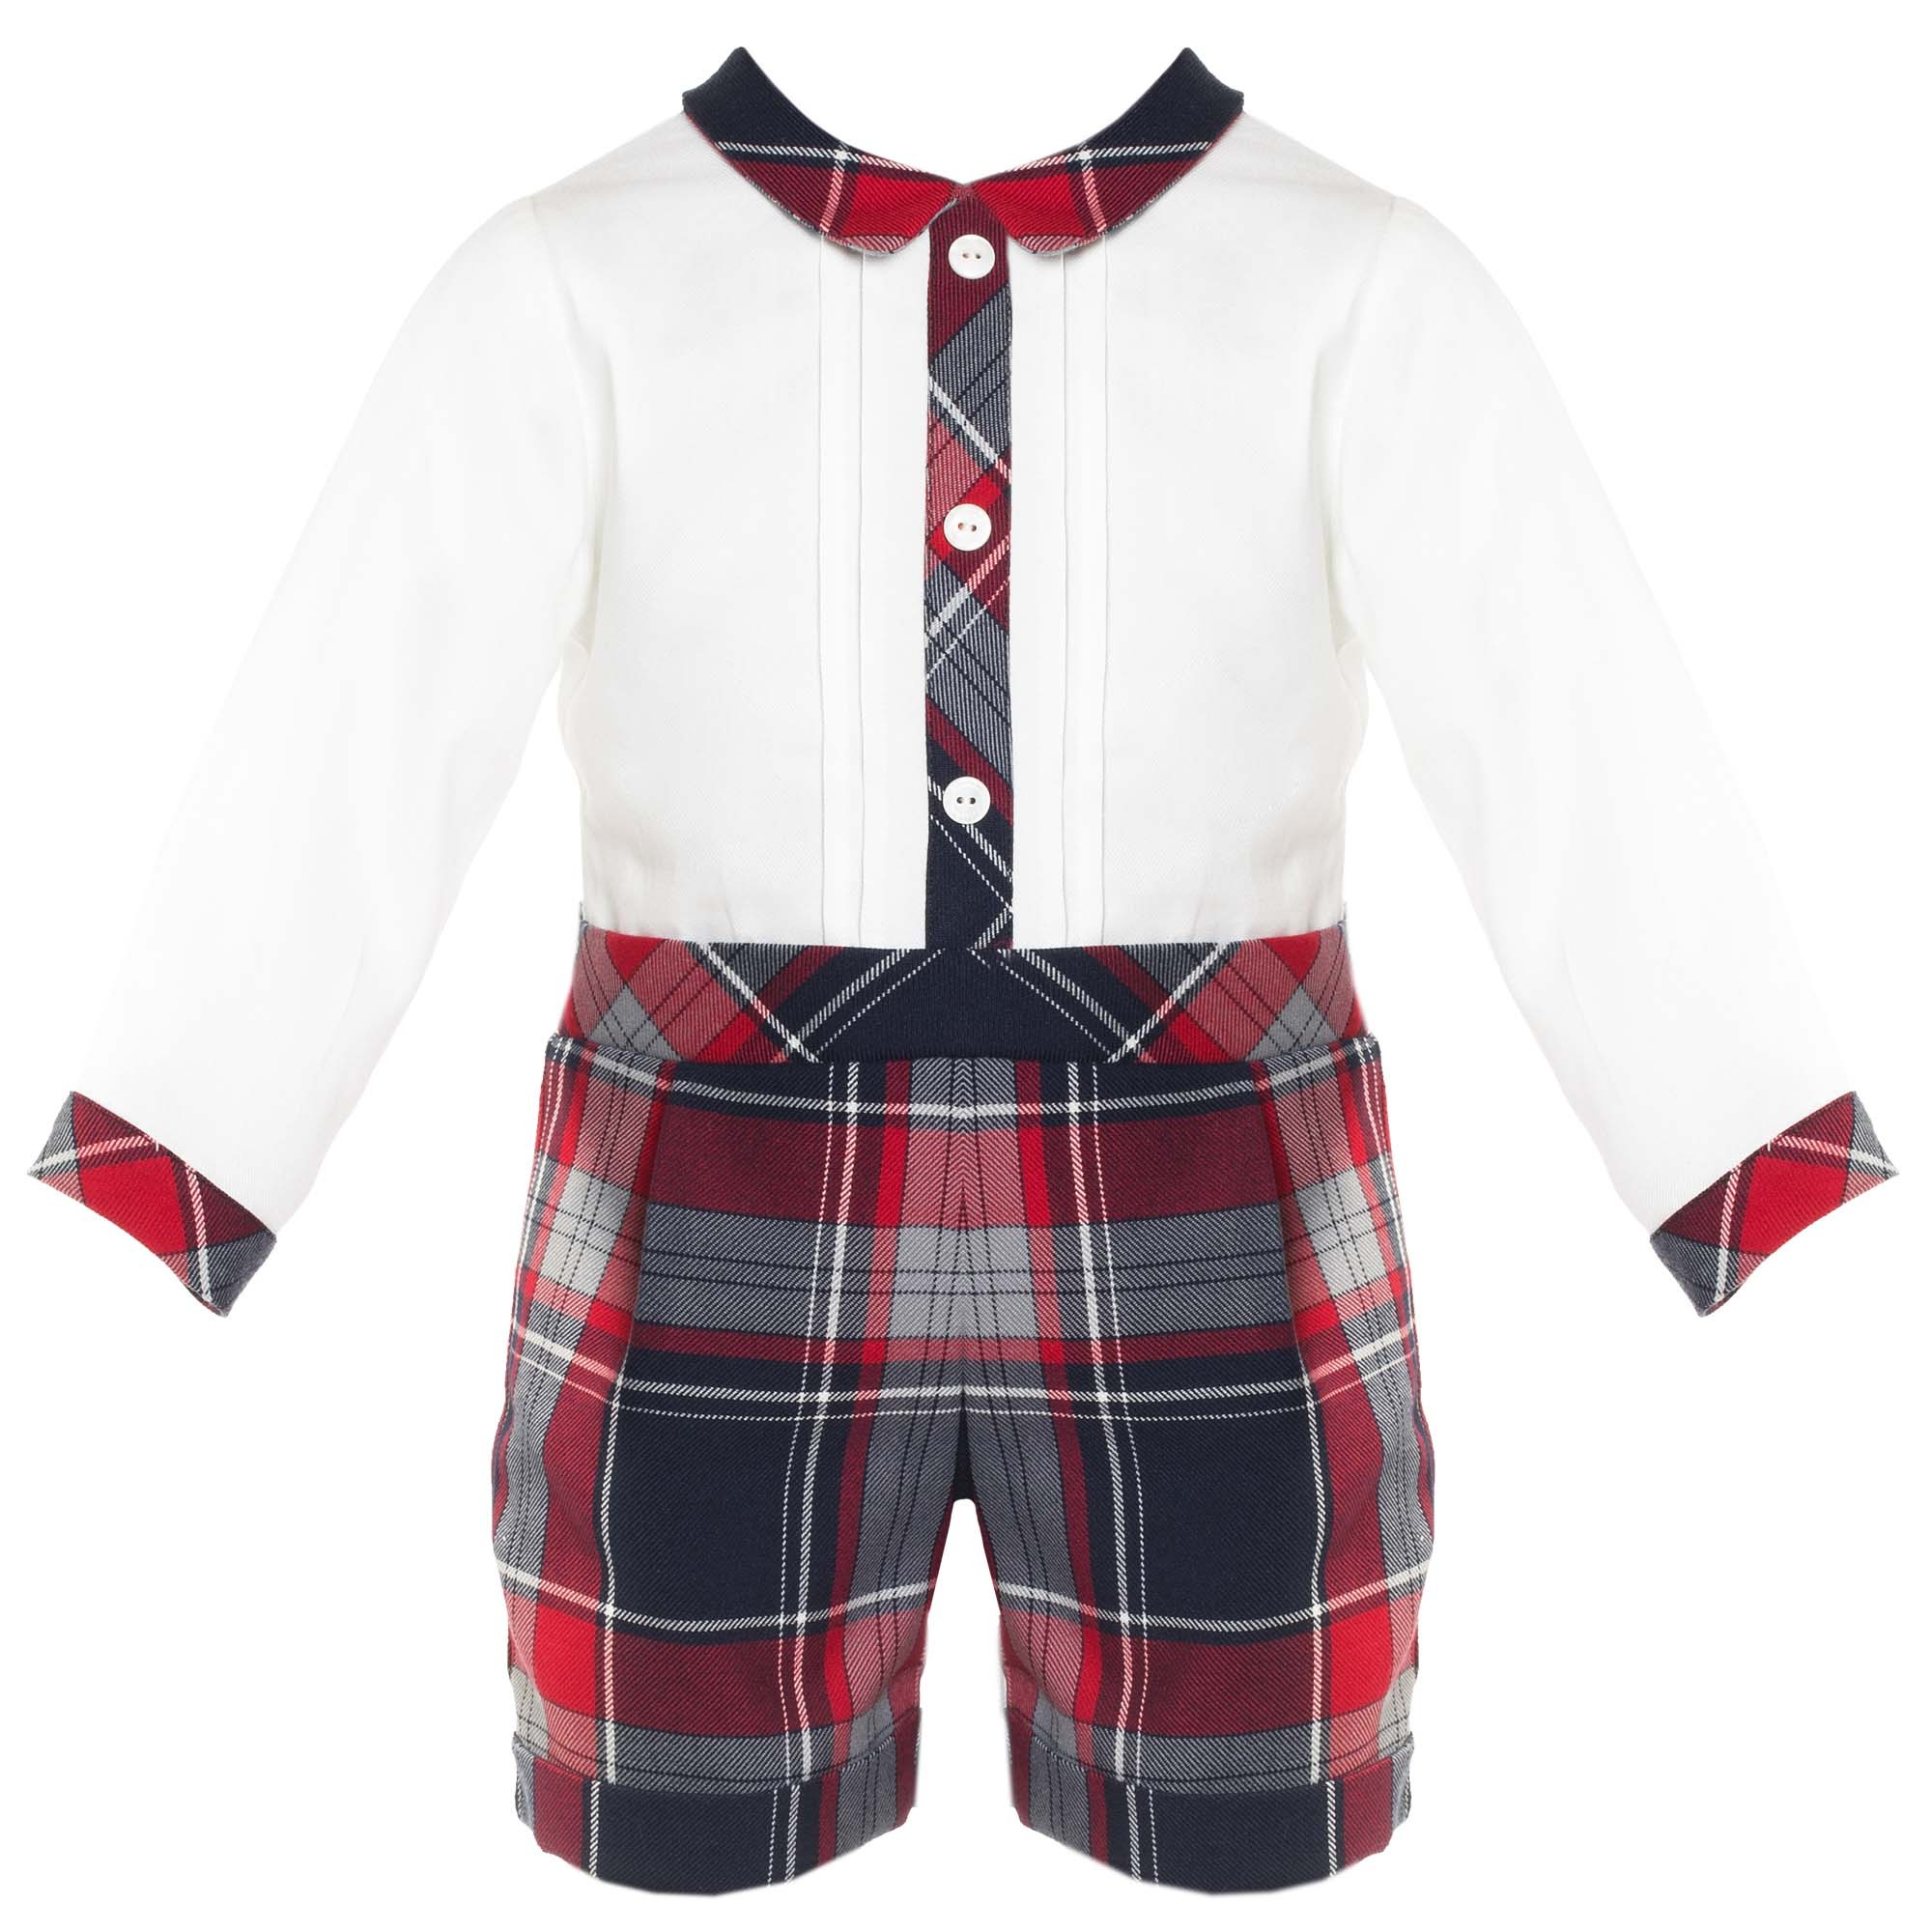 7196c75d3 PATACHOU BABY BOY WHITE   NAVY BLUE   RED TARTAN ROMPER REF ...